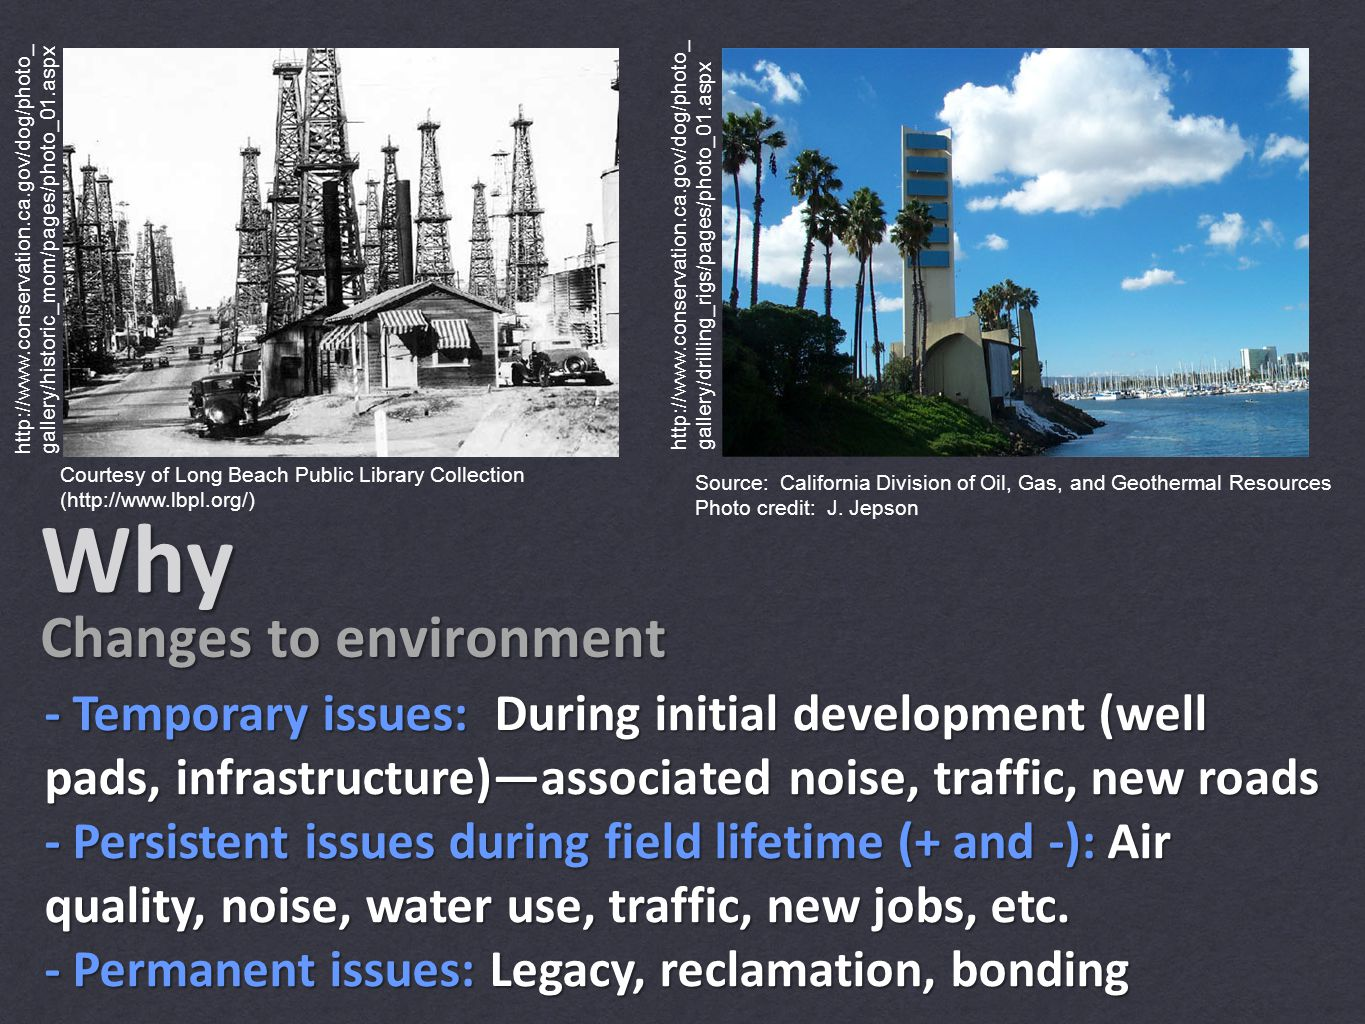 Why Changes to environment - Temporary issues: During initial development (well pads, infrastructure)—associated noise, traffic, new roads - Persistent issues during field lifetime (+ and -): Air quality, noise, water use, traffic, new jobs, etc.